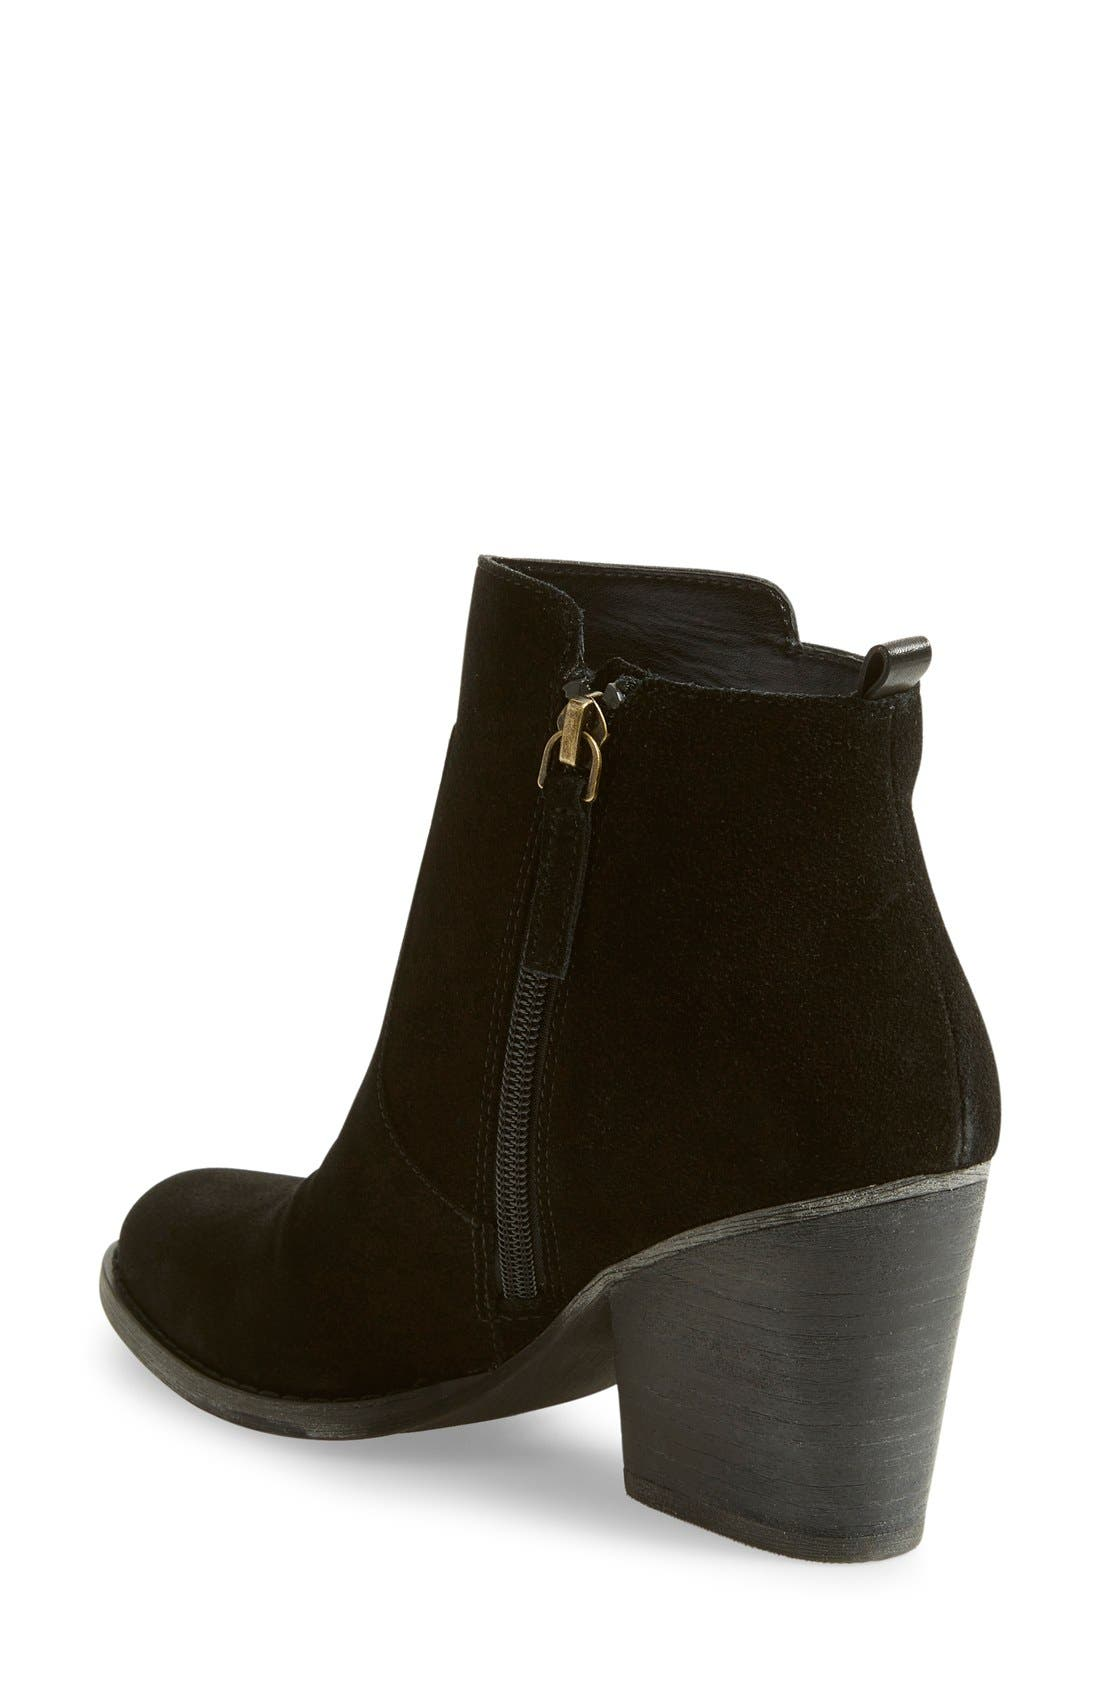 'Winsor' Block Heel Bootie,                             Alternate thumbnail 3, color,                             001